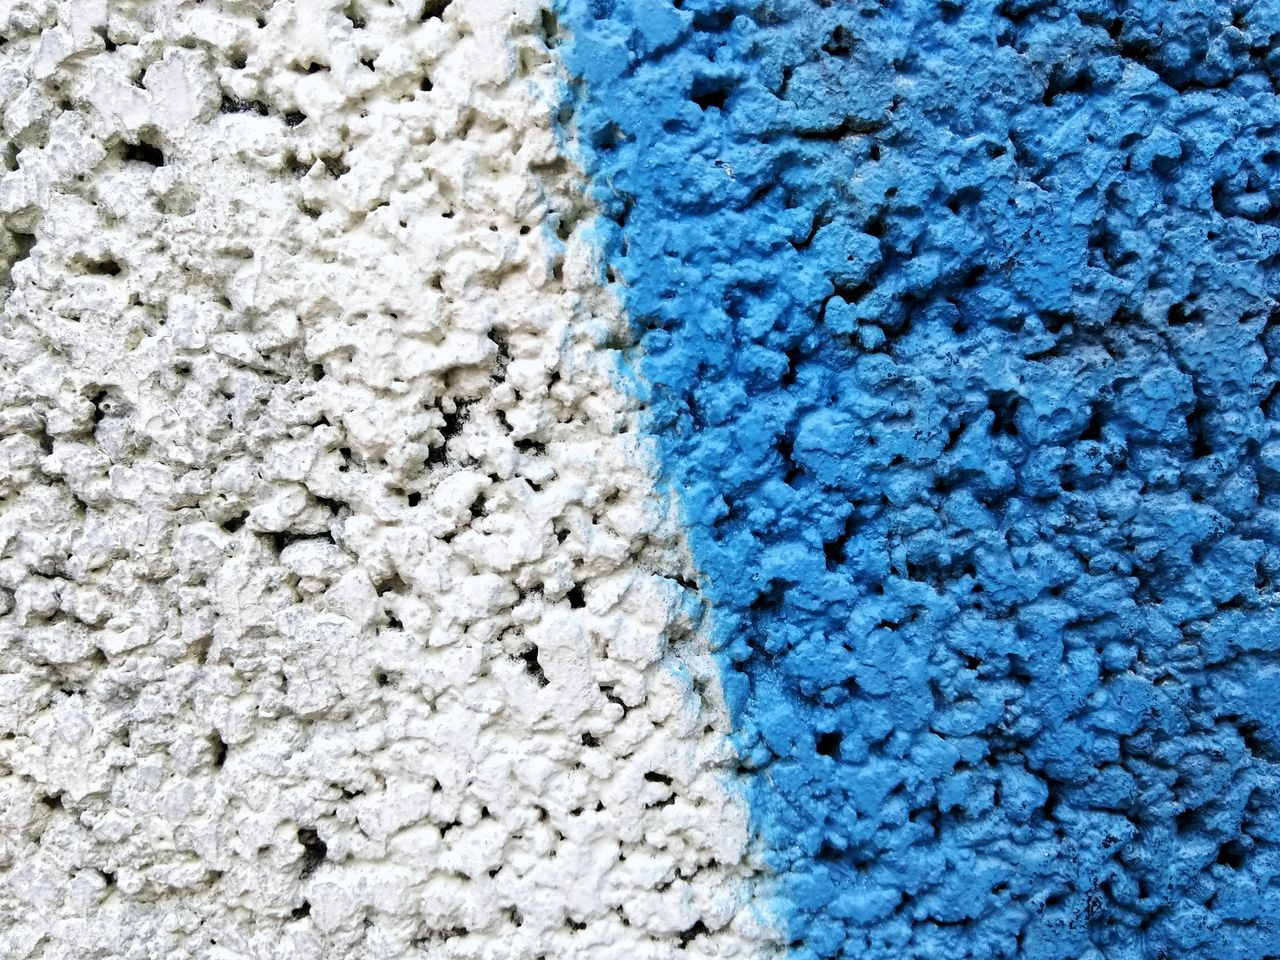 Blue Backgrounds Day Full Frame Textured  No People Outdoors Close-up Nature Wall Wall - Building Feature Textures And Surfaces Textured  Surfaces And Textures Surfaces